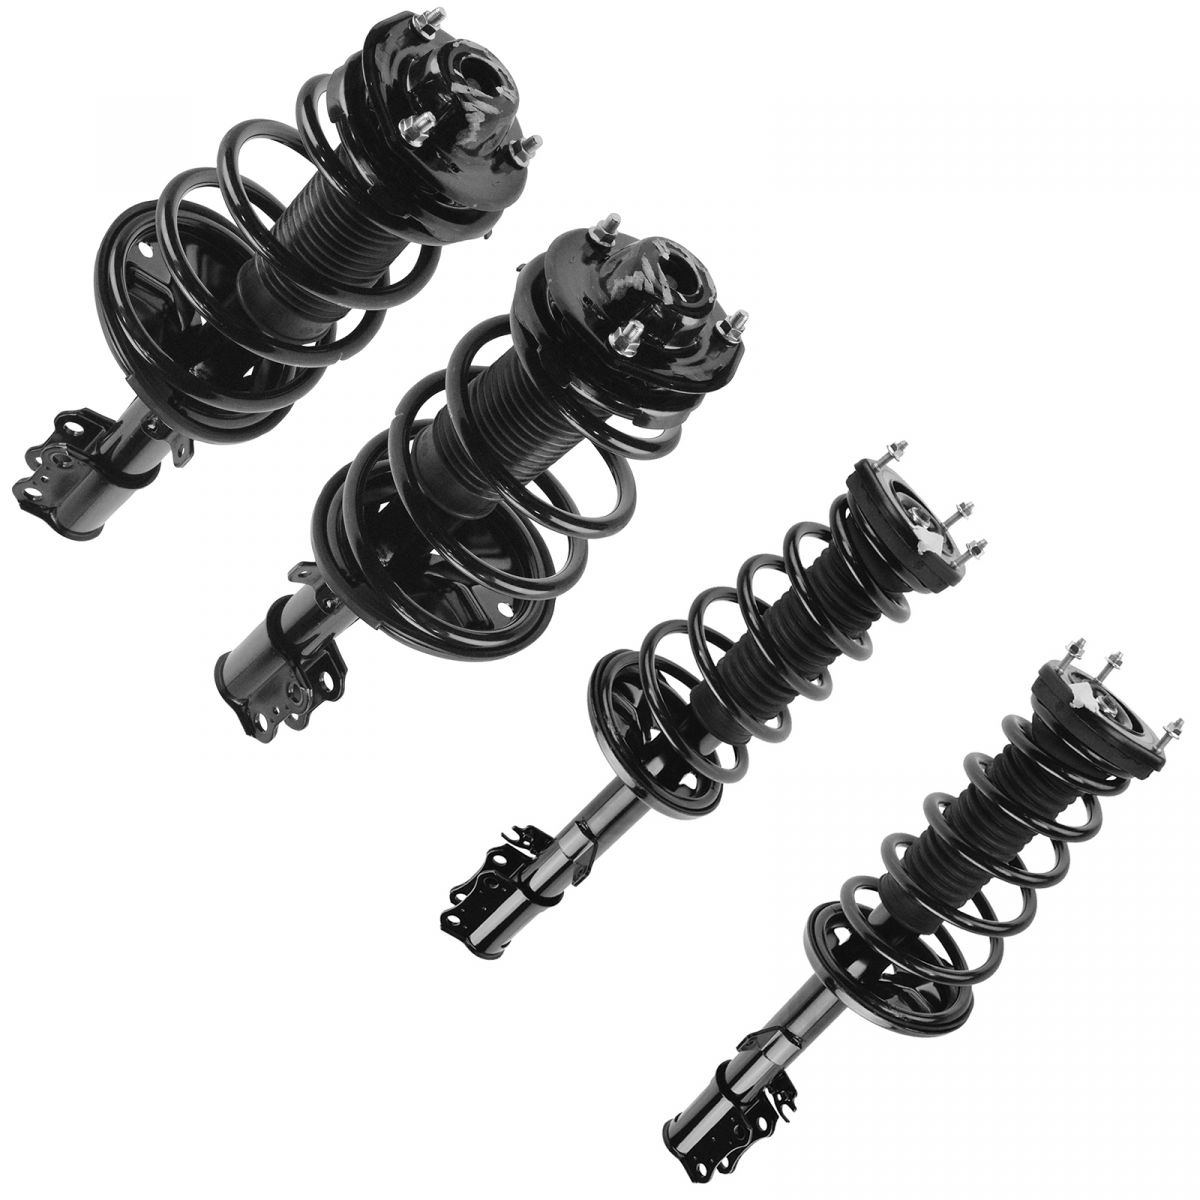 Complete Strut /& Spring Assembly Pair Set of 2 LH /& RH Rear for RX300 FWD 2WD